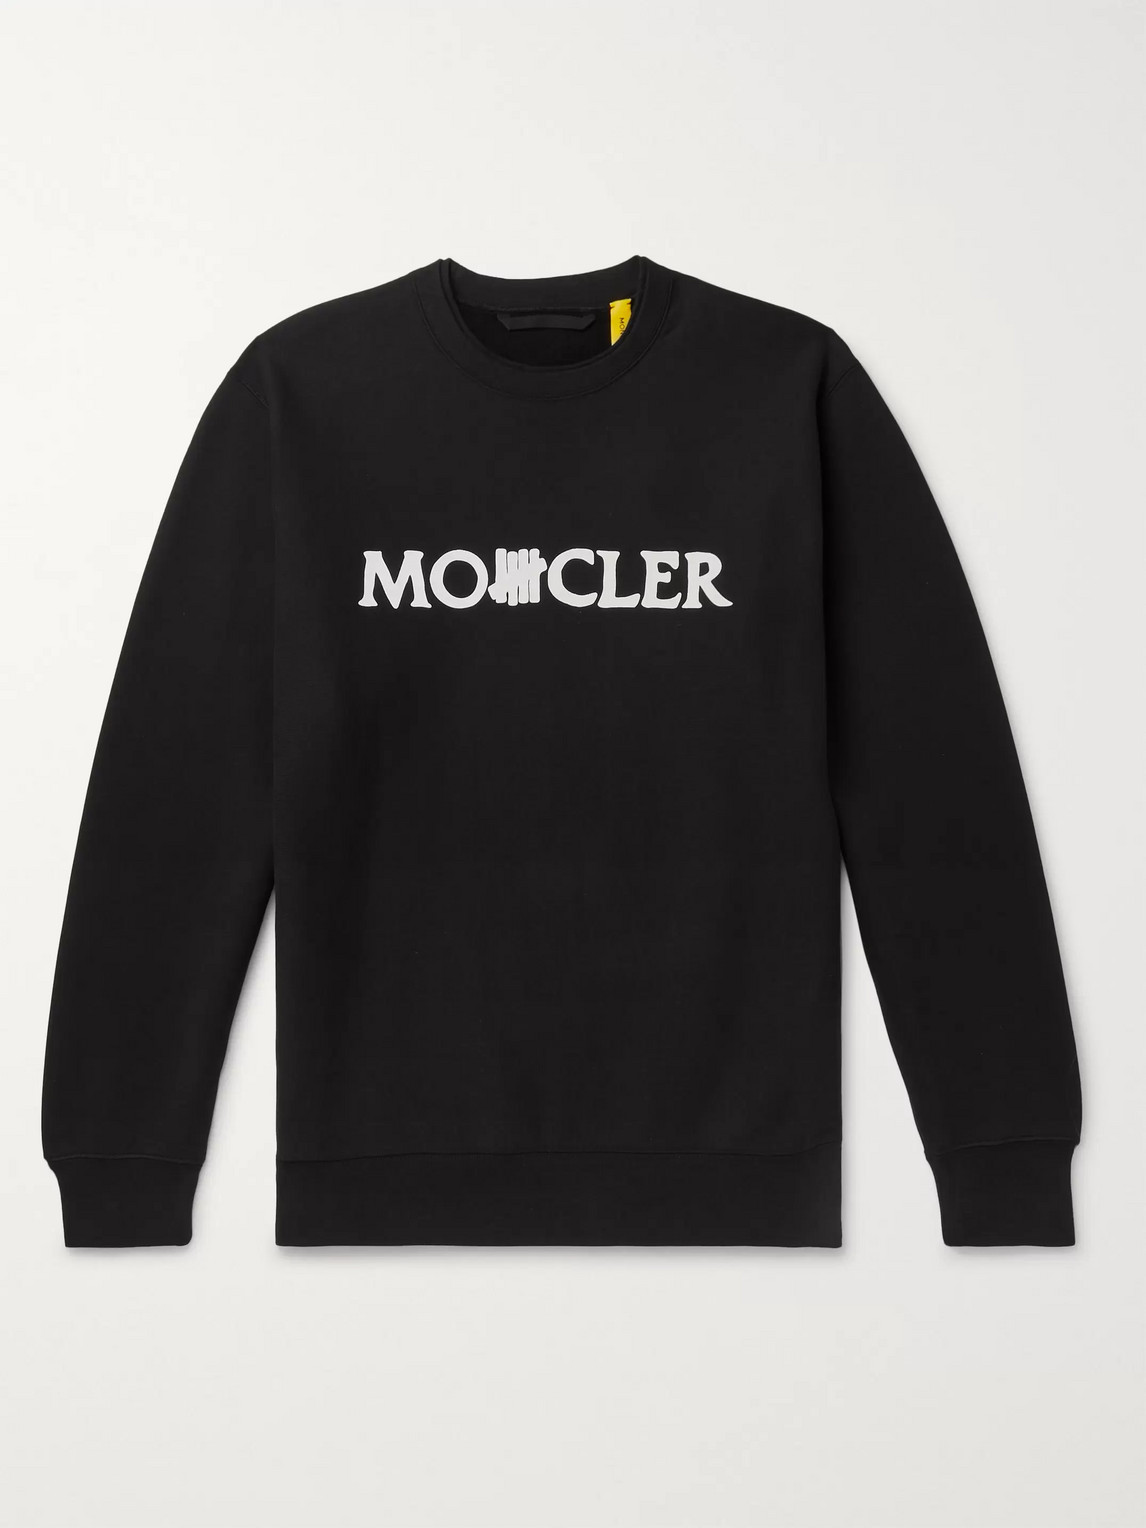 Moncler Genius Cottons UNDEFEATED 2 MONCLER 1952 LOGO-PRINT FLEECE-BACK COTTON-JERSEY SWEATSHIRT